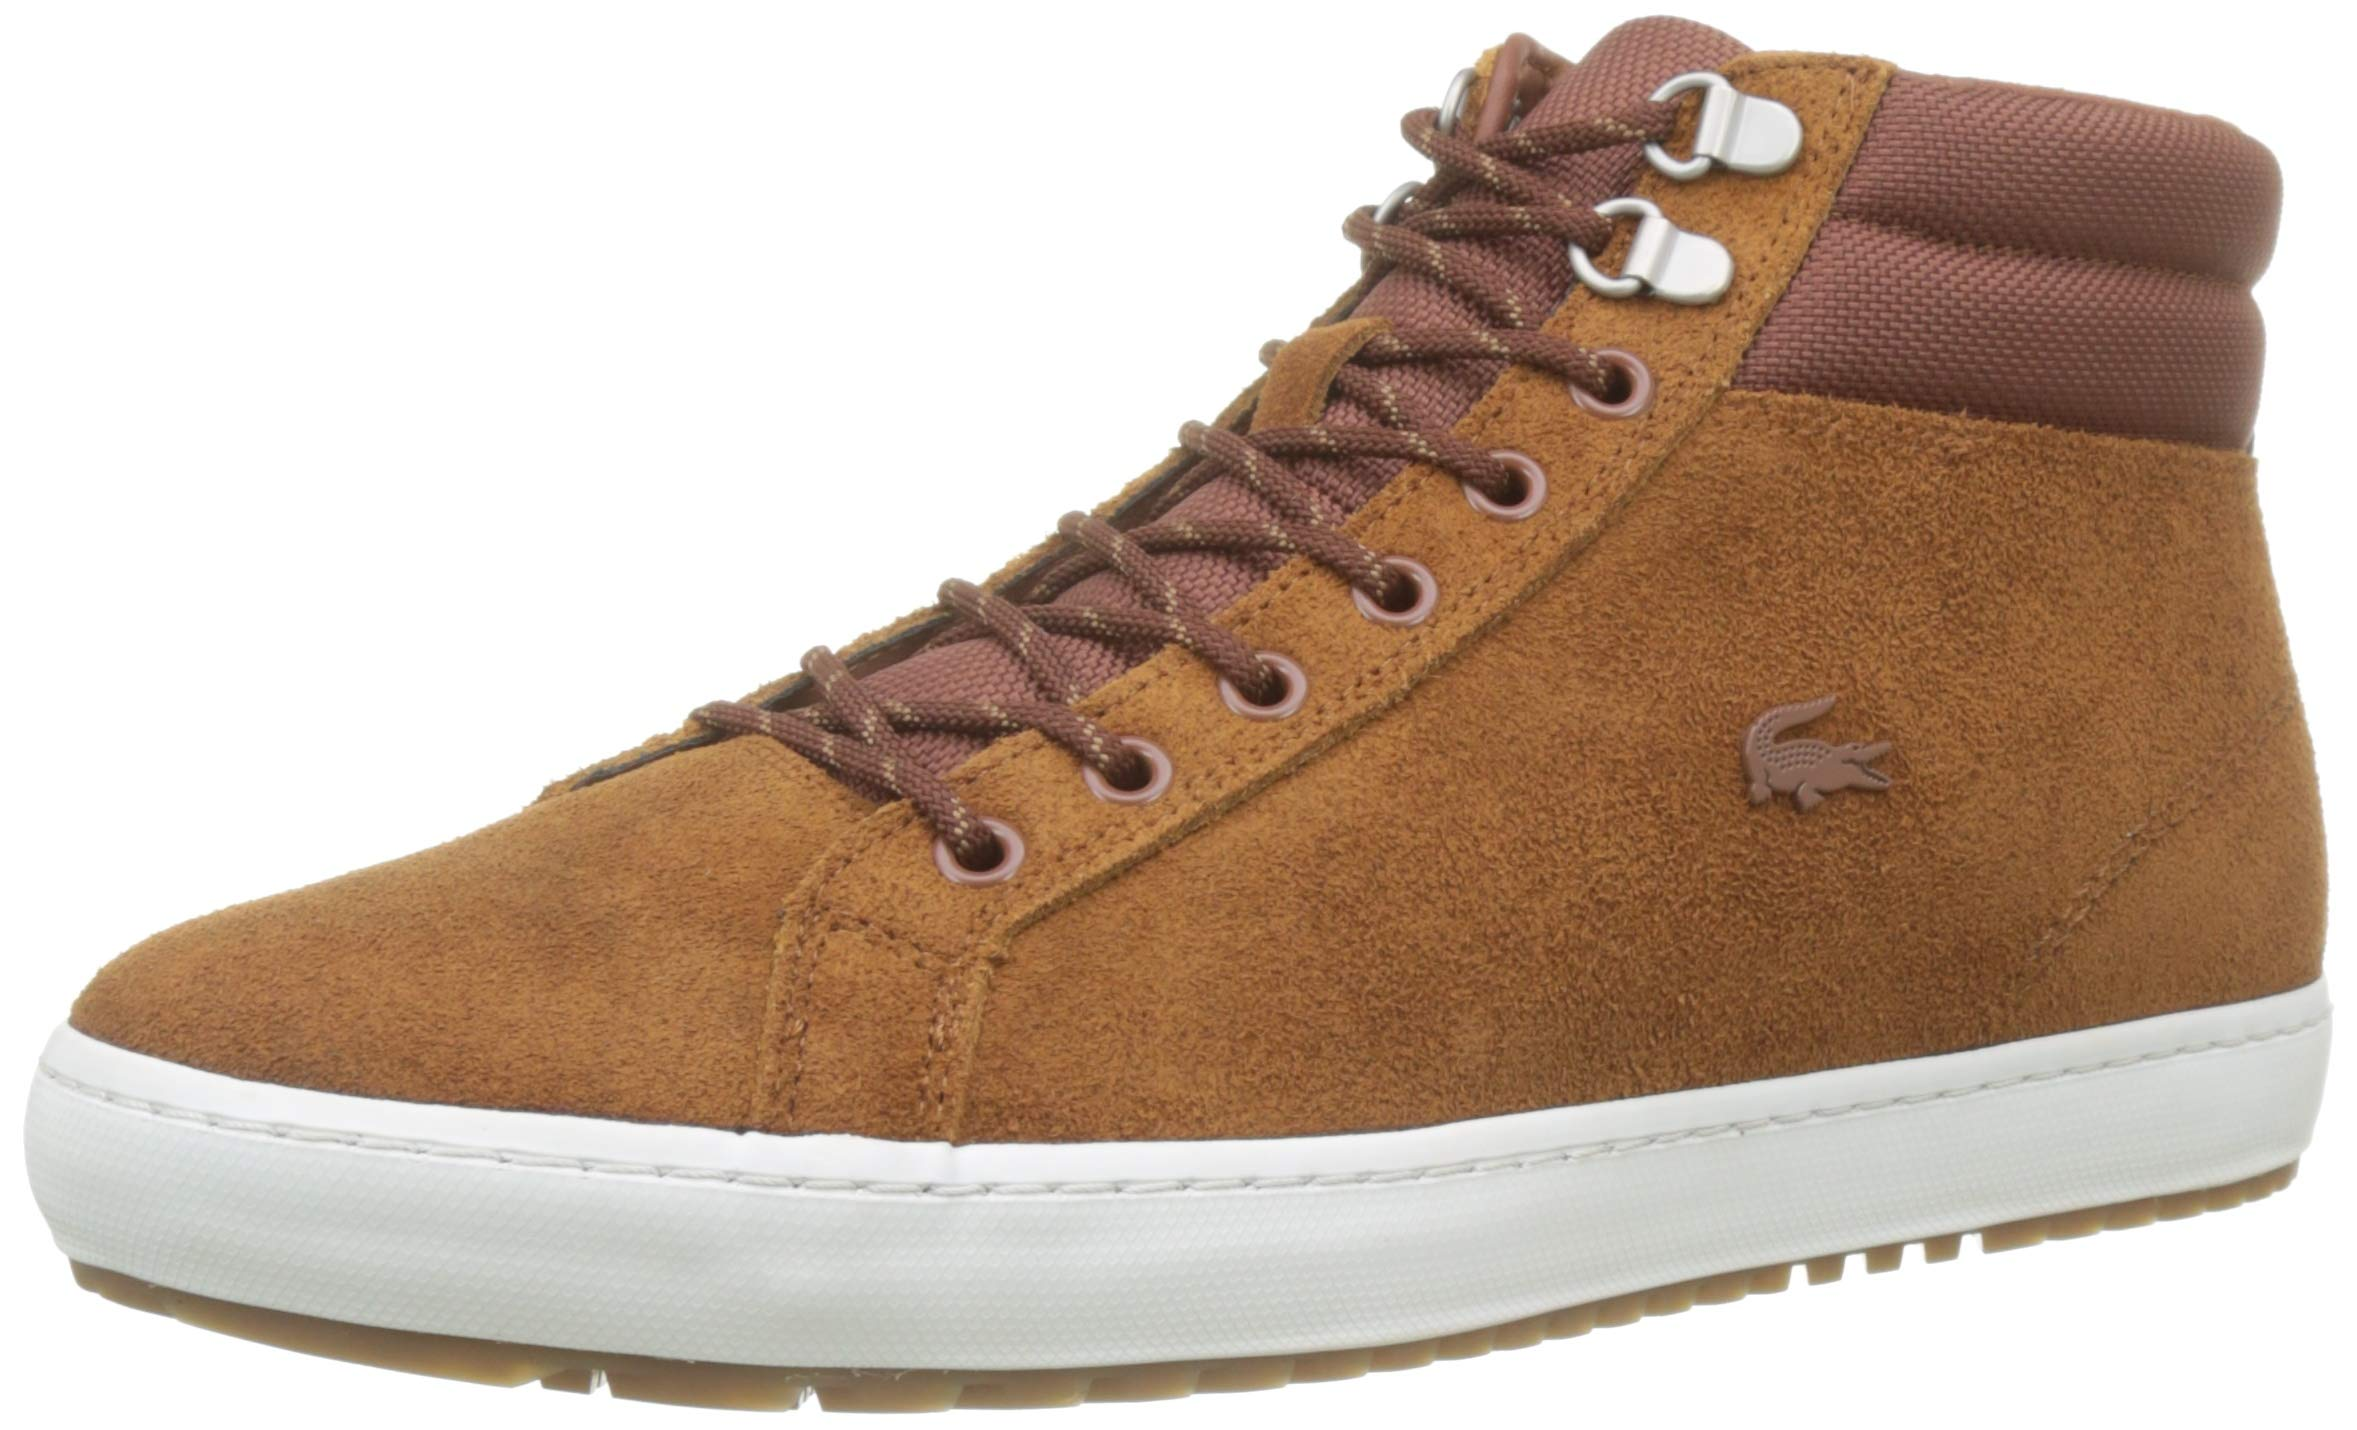 Eu White Lacoste HommesMarronbrown Straightsetinsulac3191cmaBaskets off 2c342 Y7yfgvmb6I